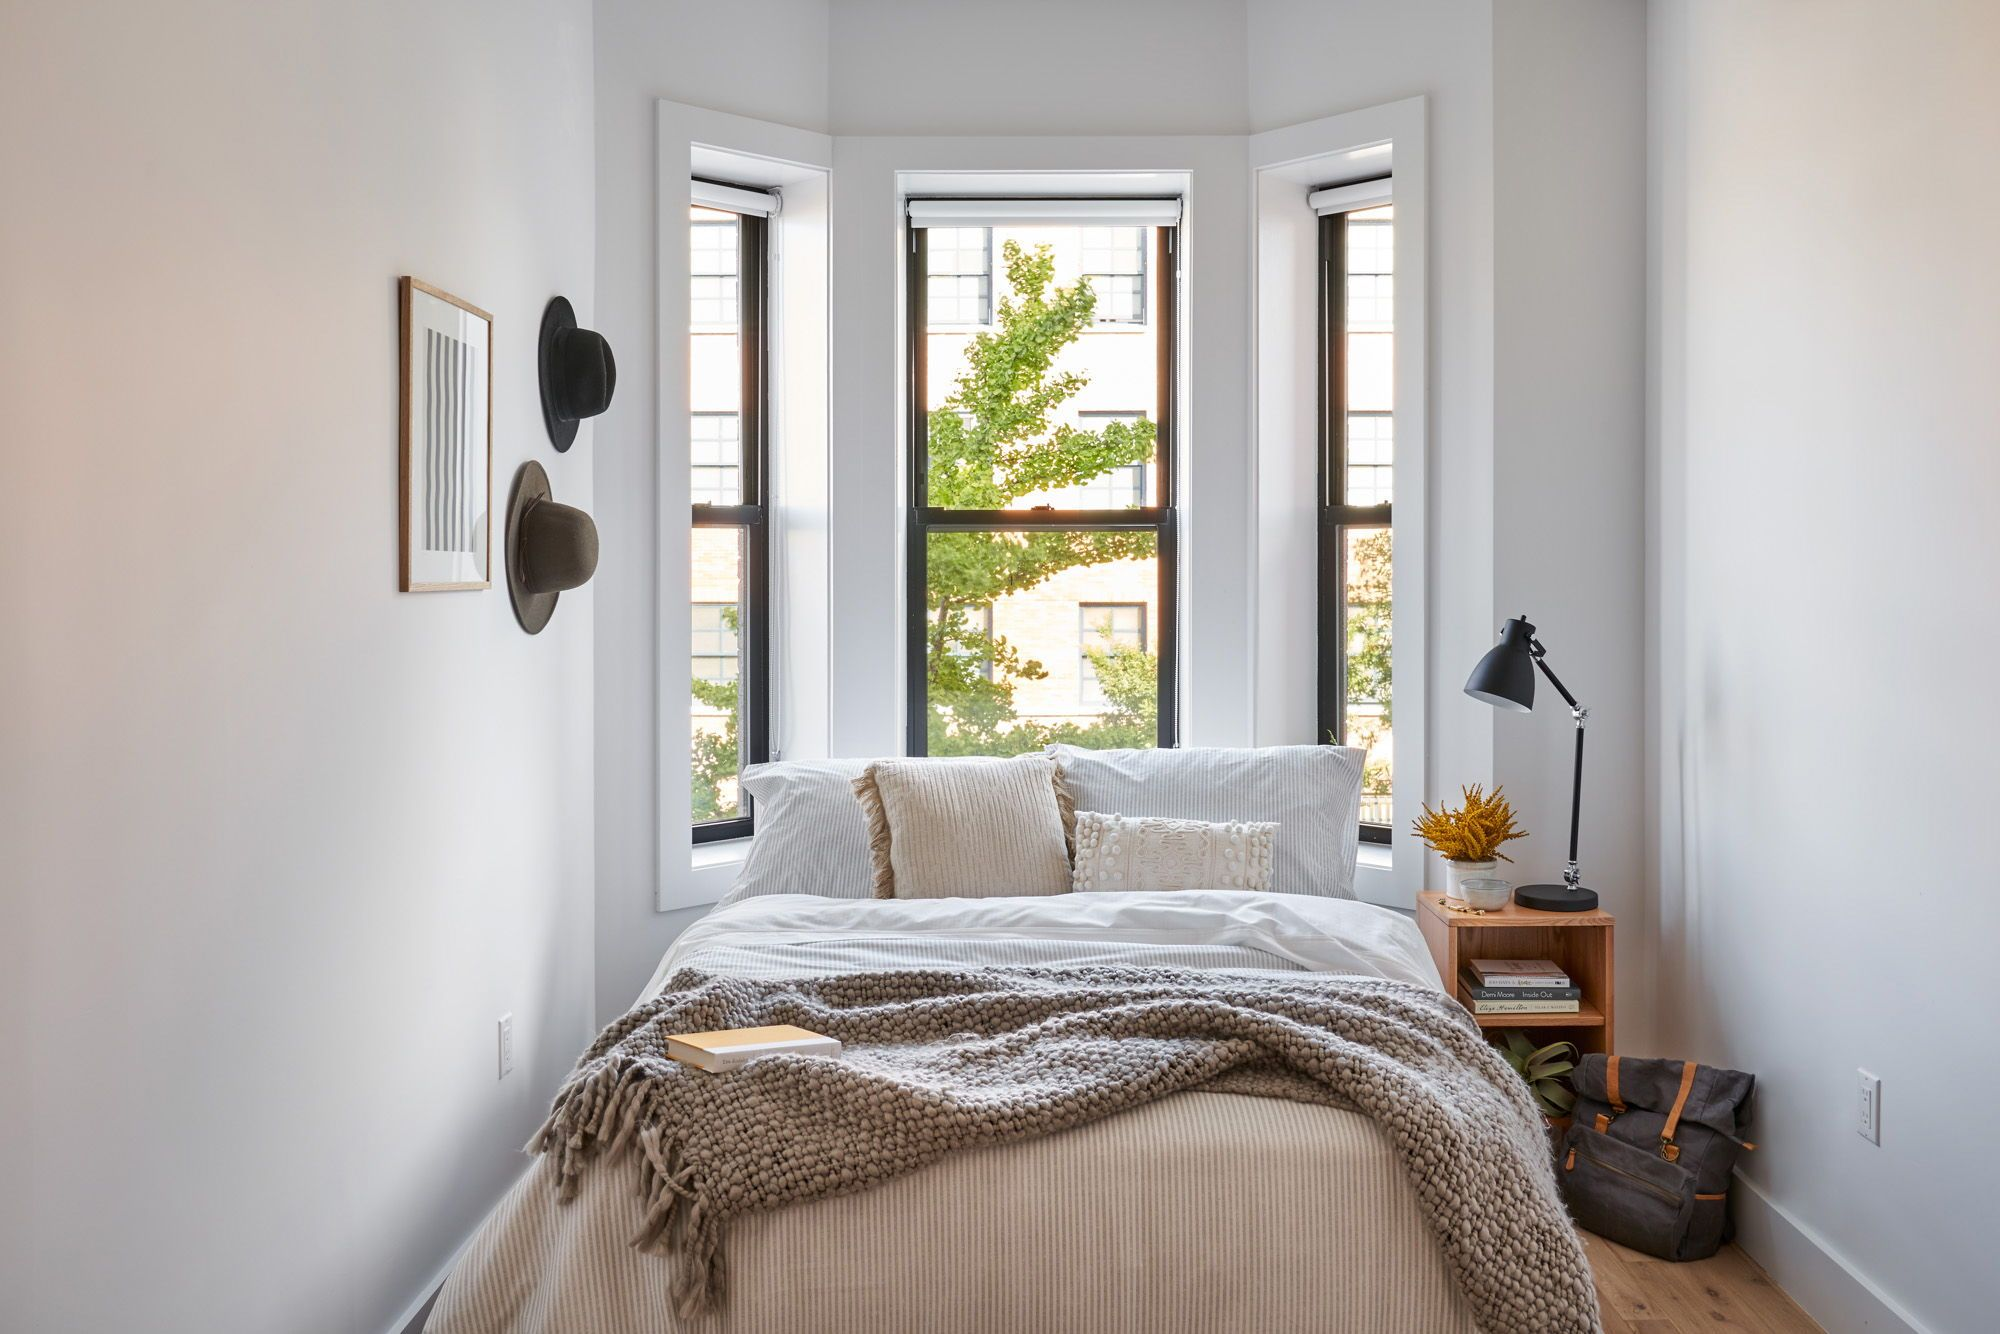 Common Dean Beautifully decorated apartment bedroom in